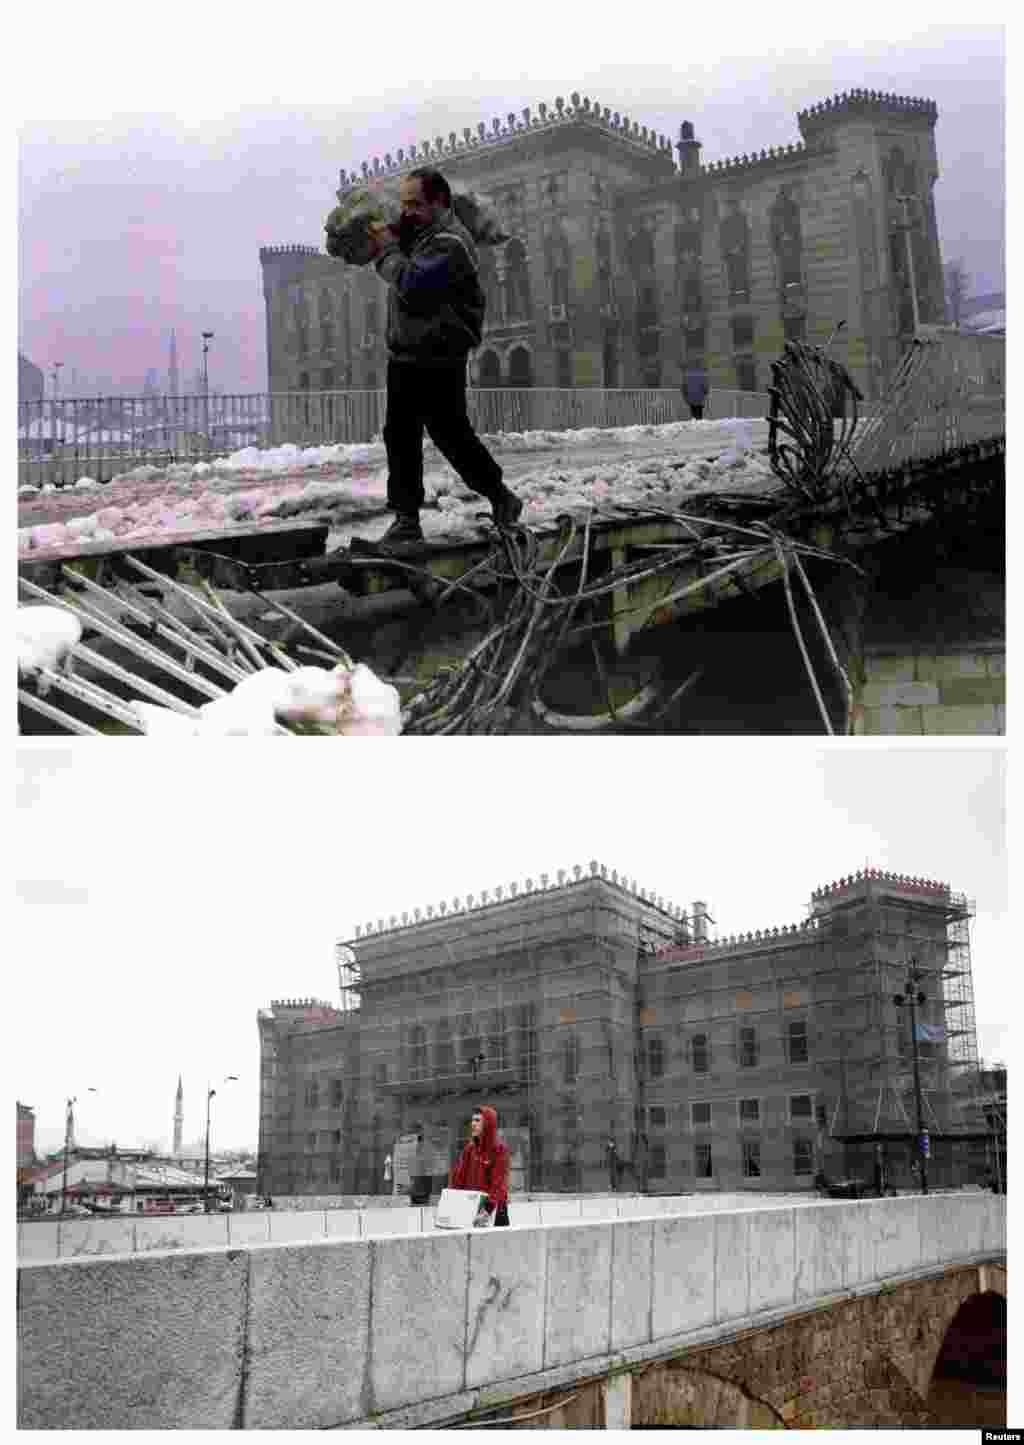 A man carries firewood across a destroyed bridge near Sarajevo's burned-out national library on January 1, 1994. A man carries a box over the same bridge, now repaired, on April 1, 2012.